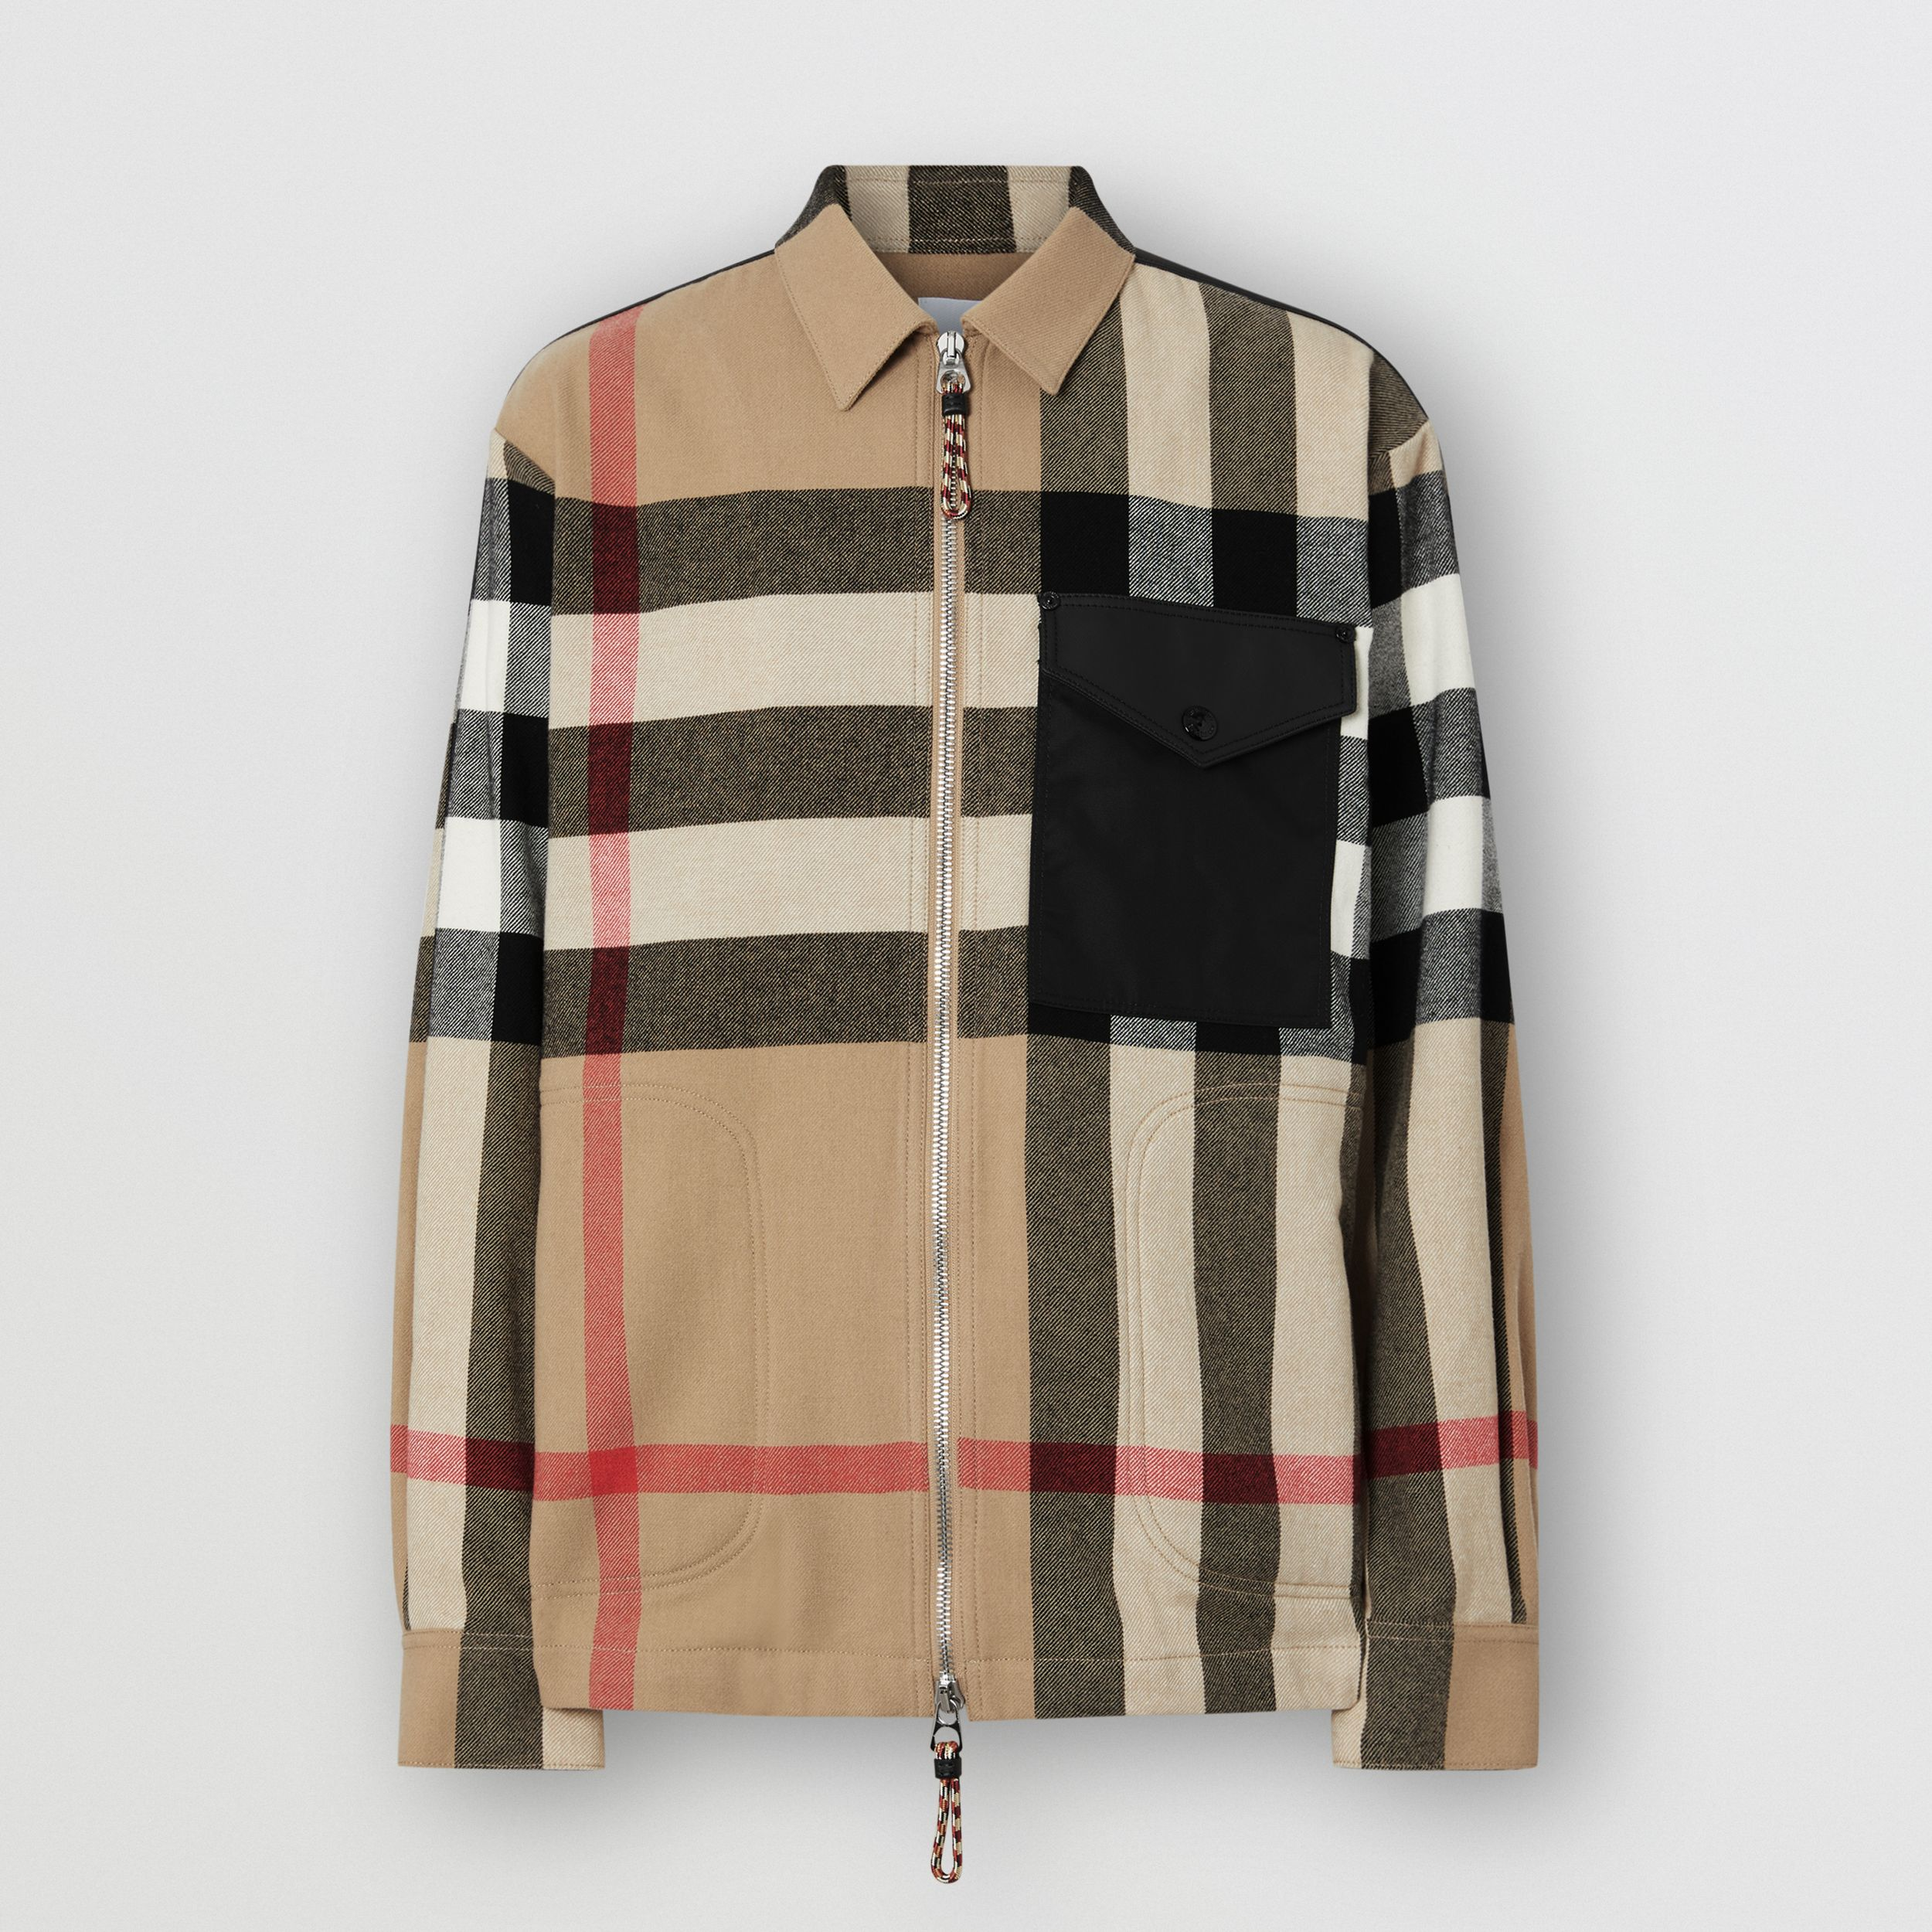 Contrast Panel Check Wool Cotton Shirt in Archive Beige - Men | Burberry - 4